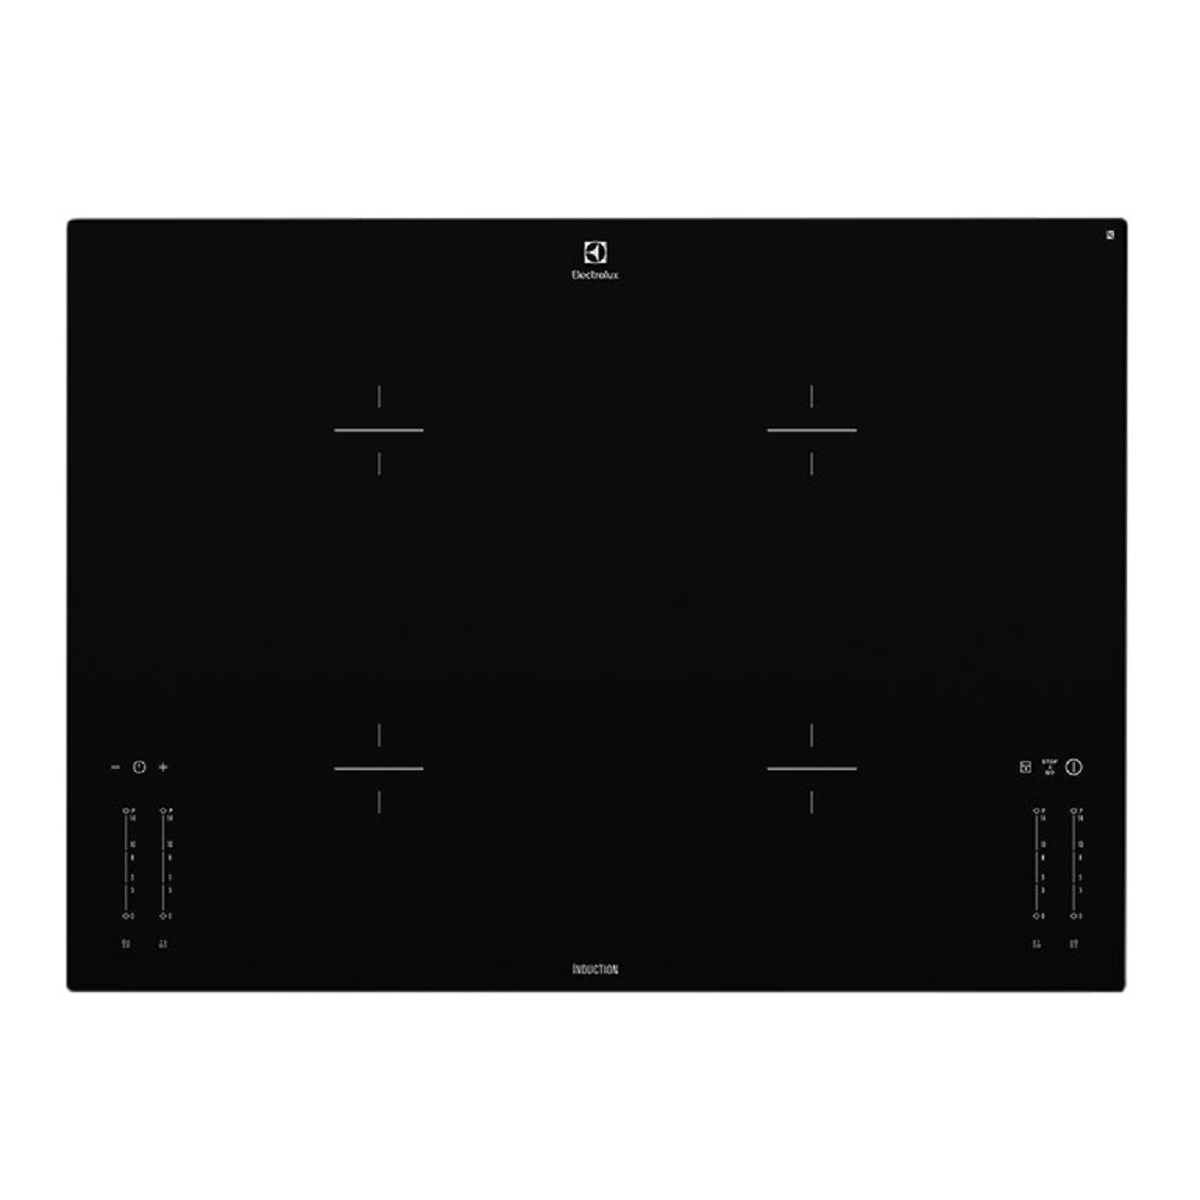 Electrolux Induction Cooktops EHI745BA